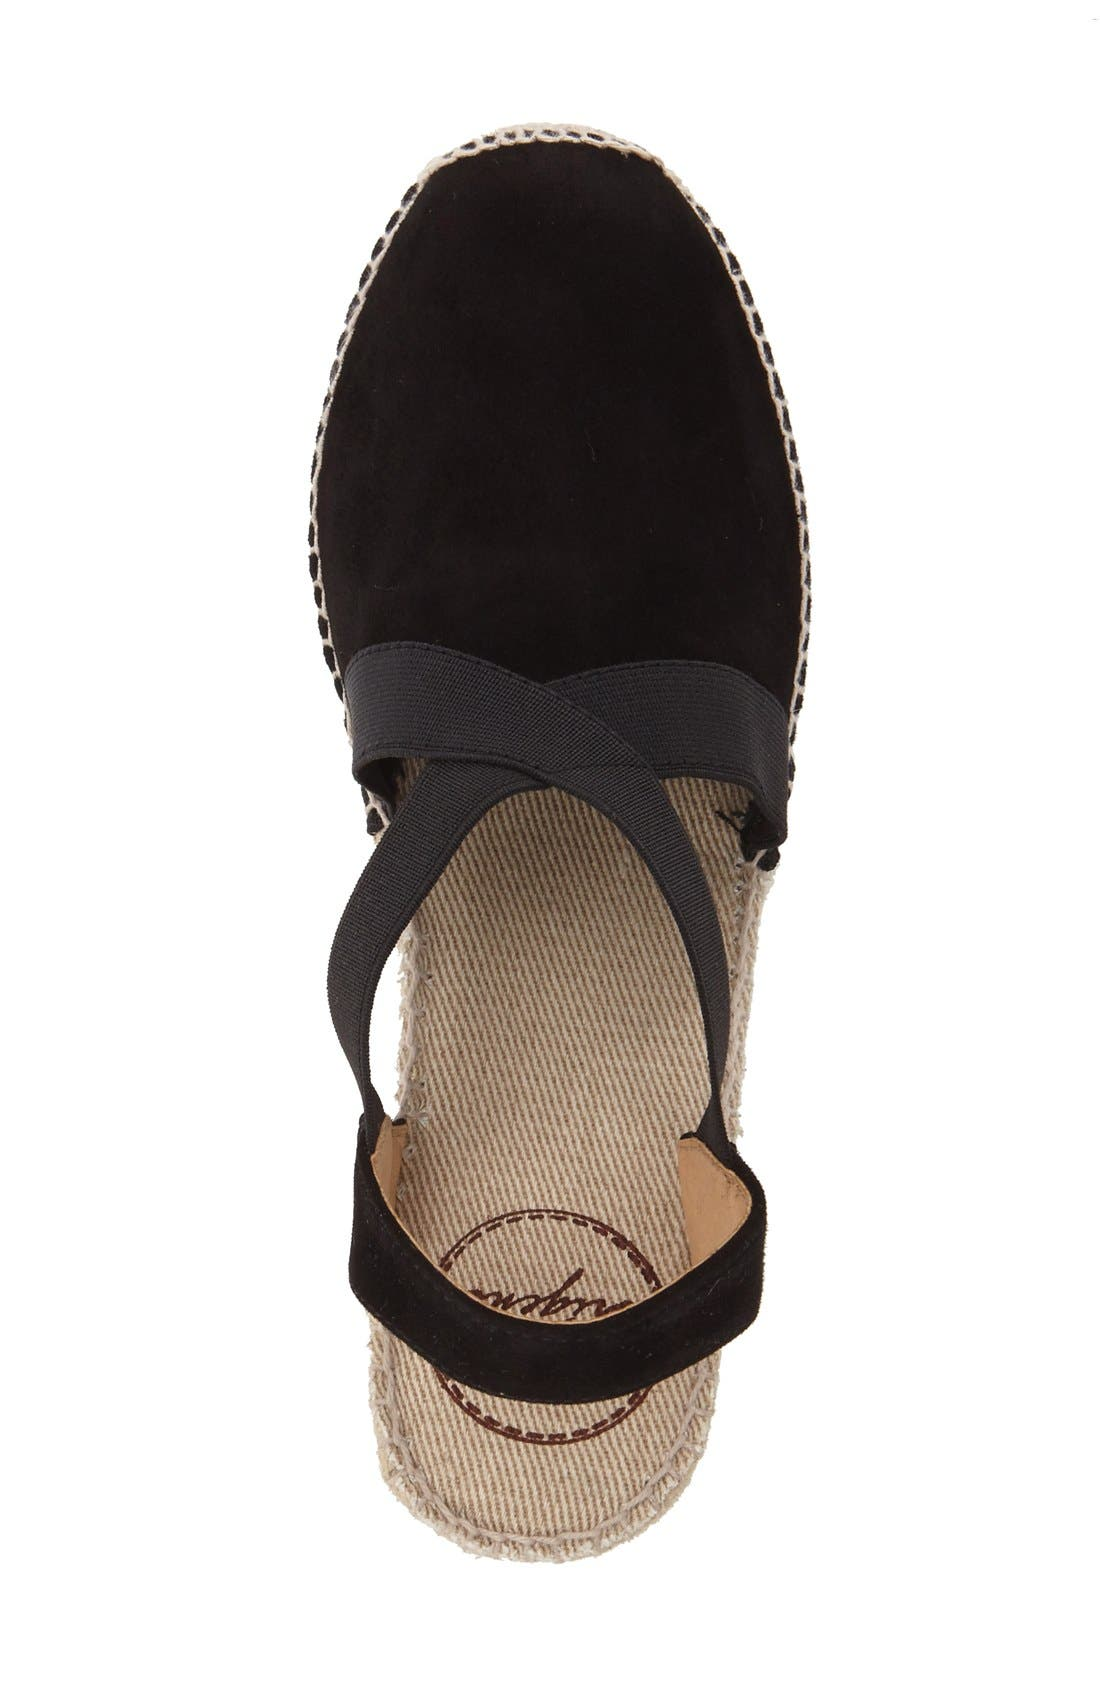 TONI PONS, Tona Espadrille Wedge, Alternate thumbnail 2, color, BLACK SUEDE